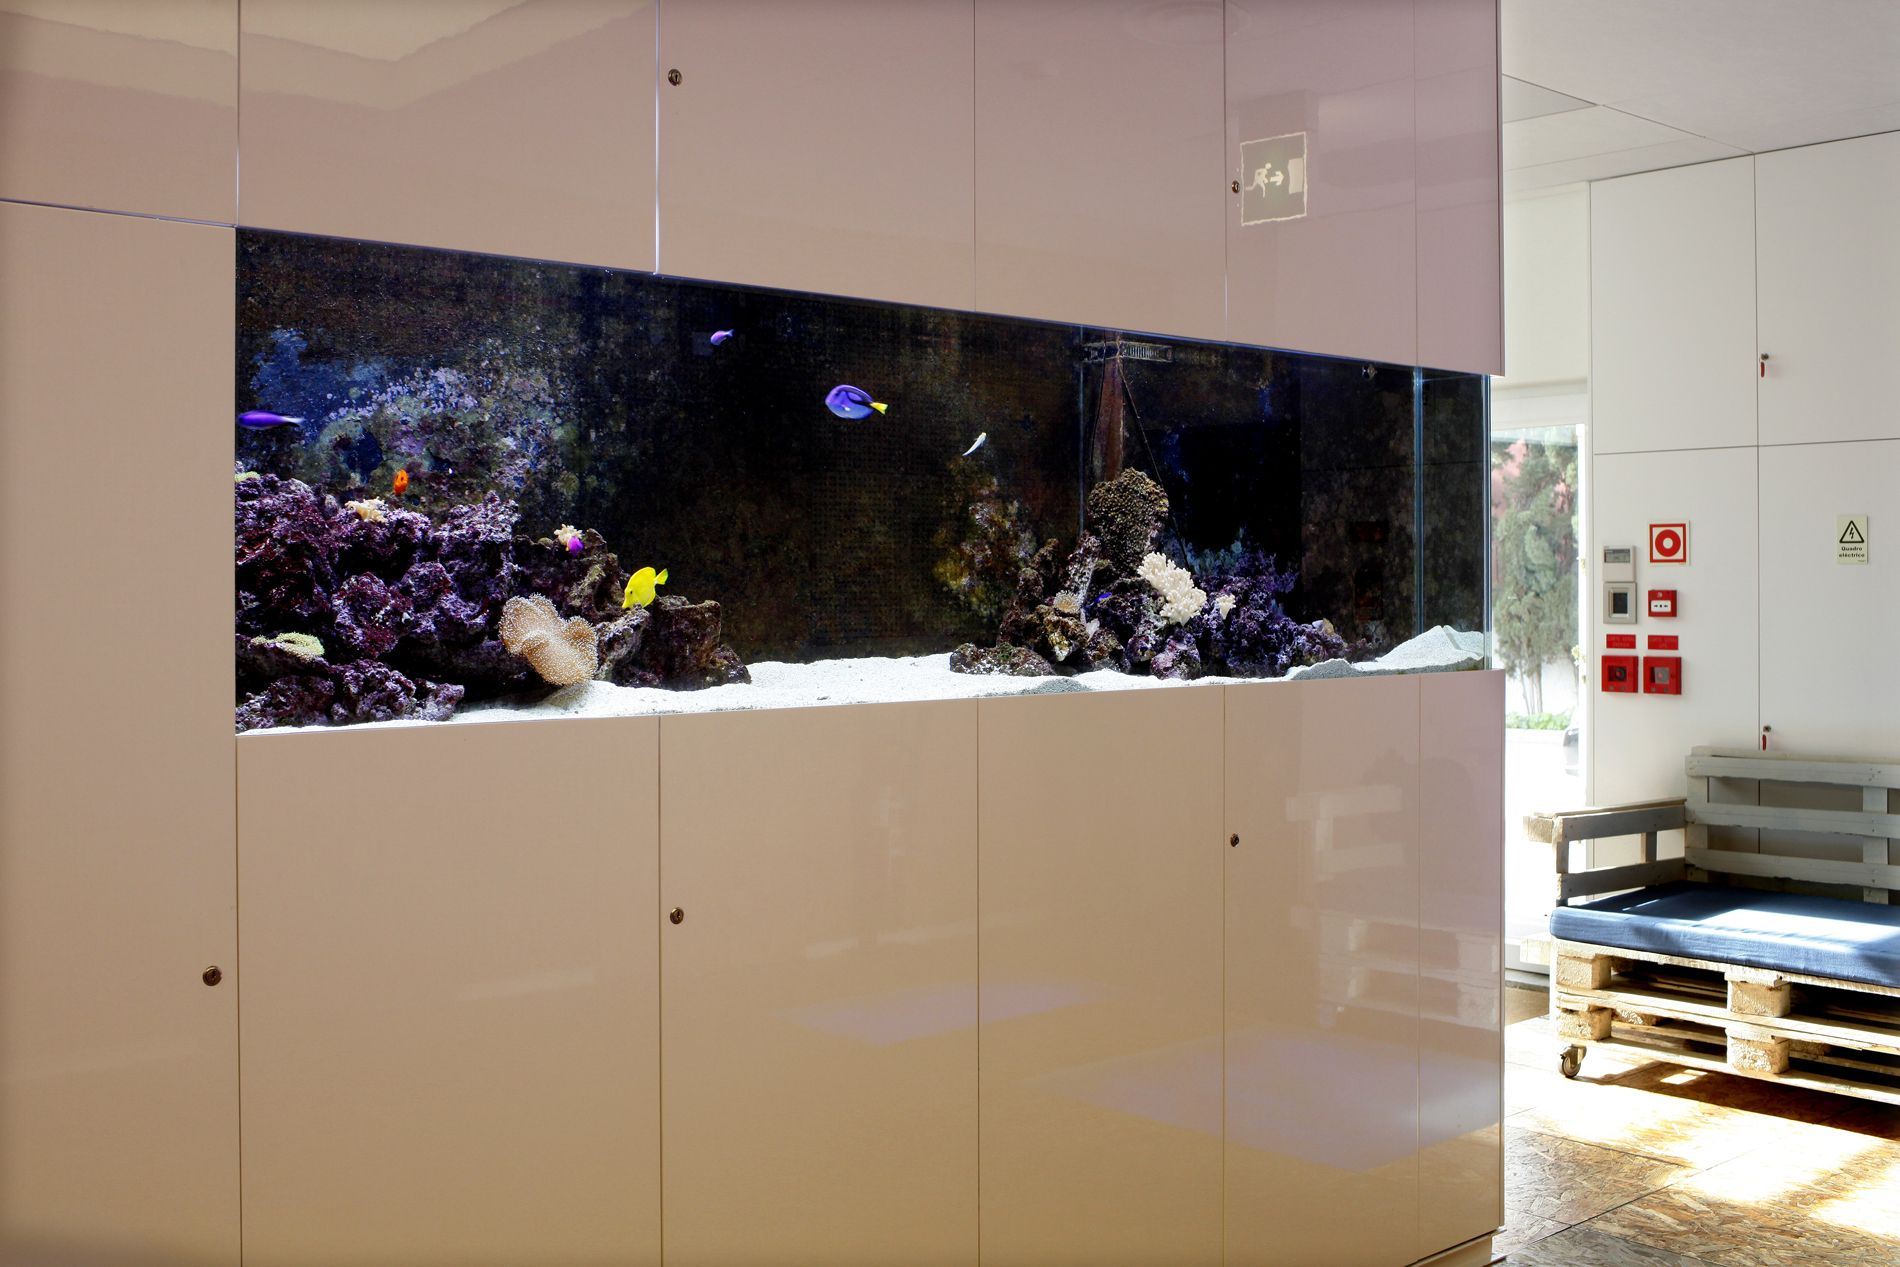 The Aquariums Sleek Lines Follow The Wall Panelling To Give